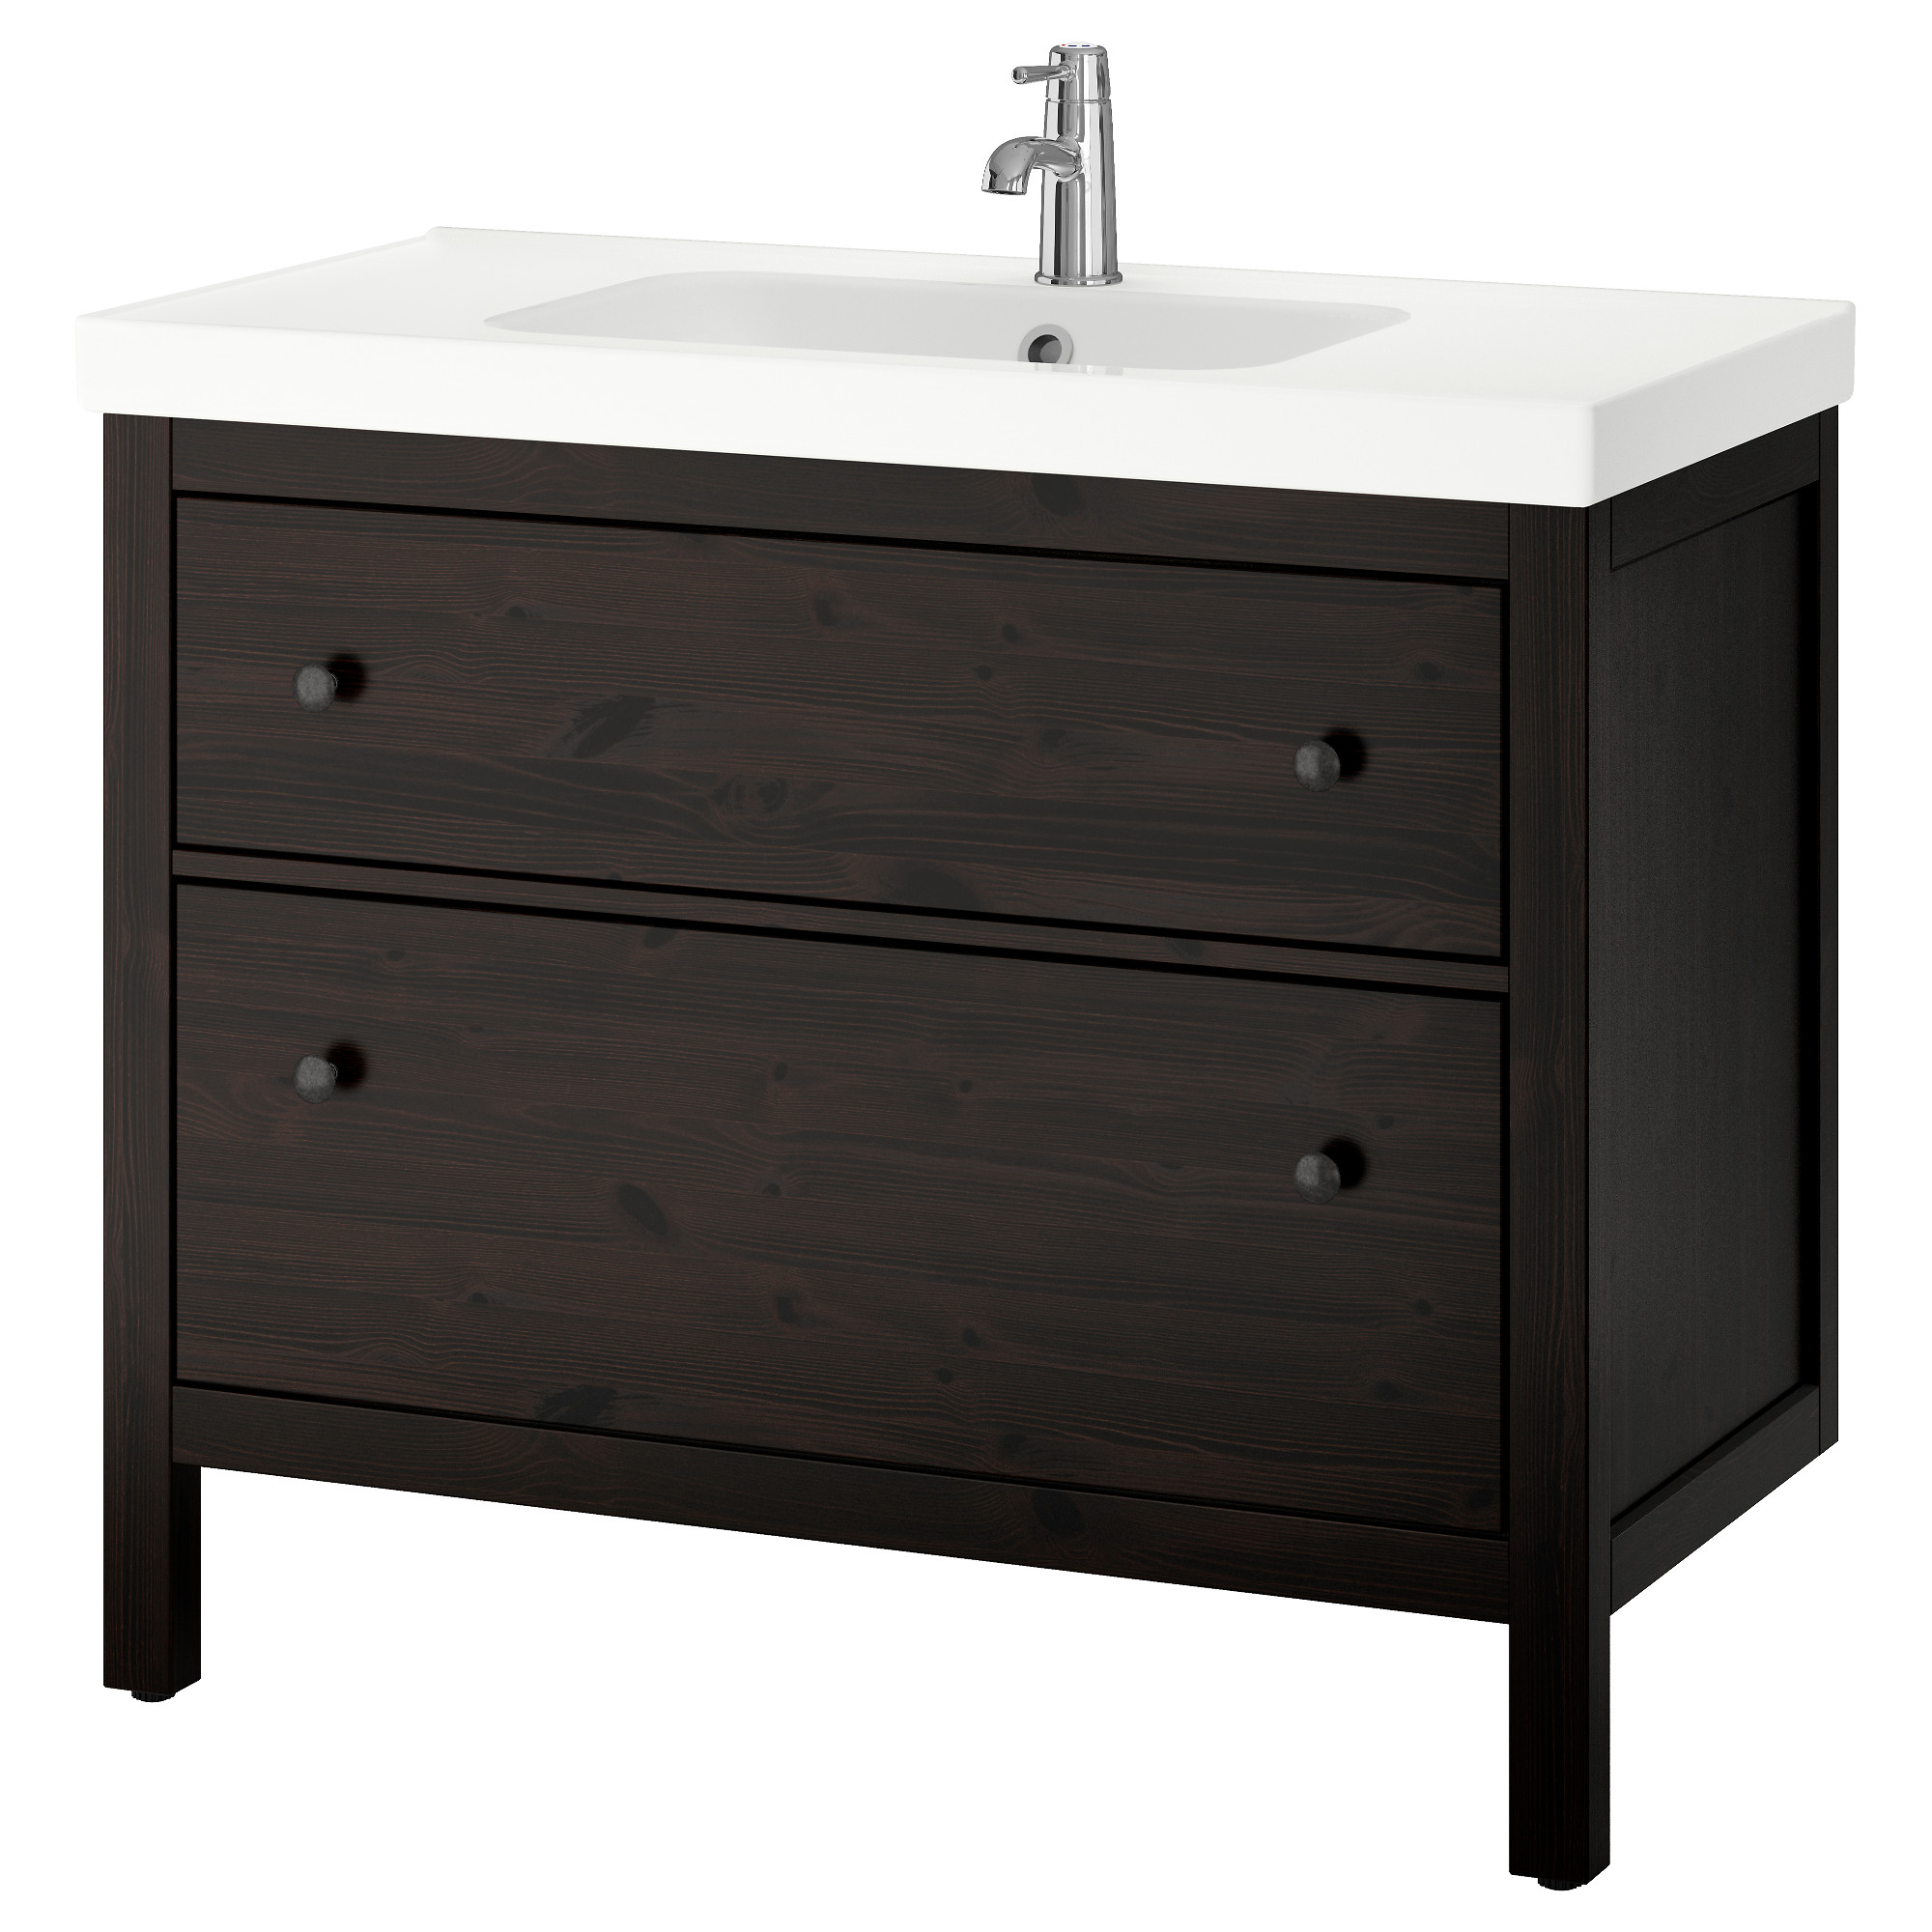 Bathroom vanities dallas tx - Hemnes Odensvik Sink Cabinet With 2 Drawers Black Brown Stain Width 40